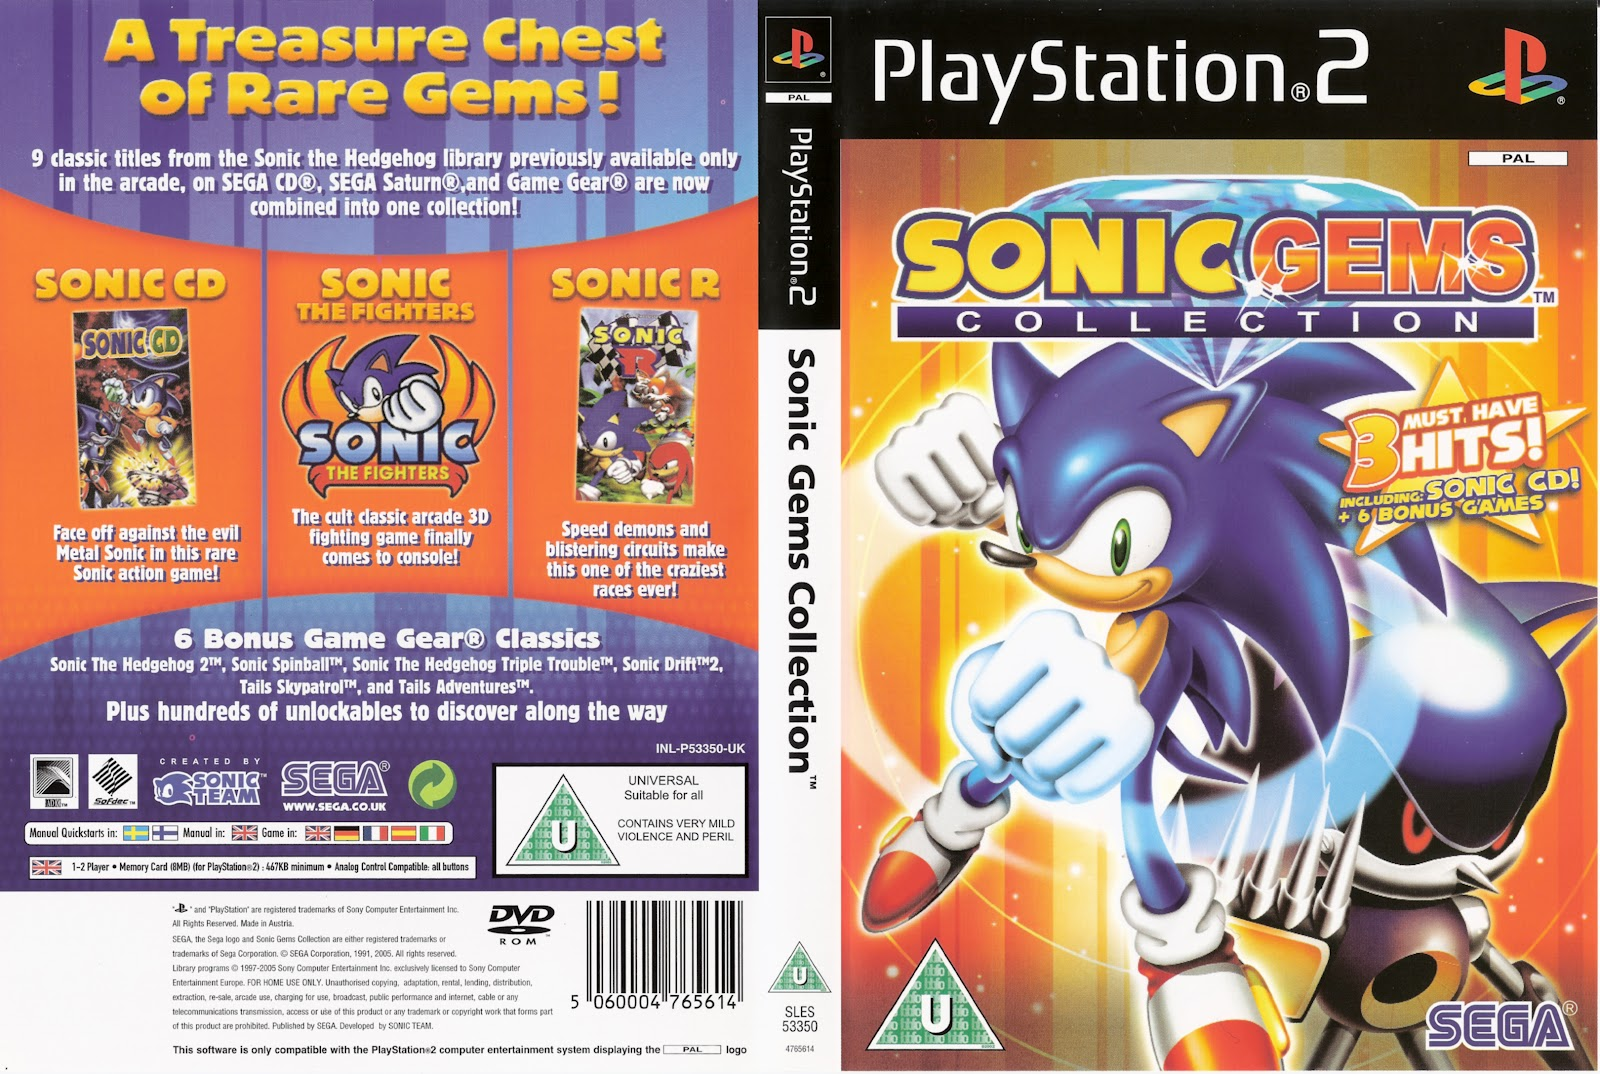 ANÁLISE: SONIC GEMS COLLECTION (PS2)